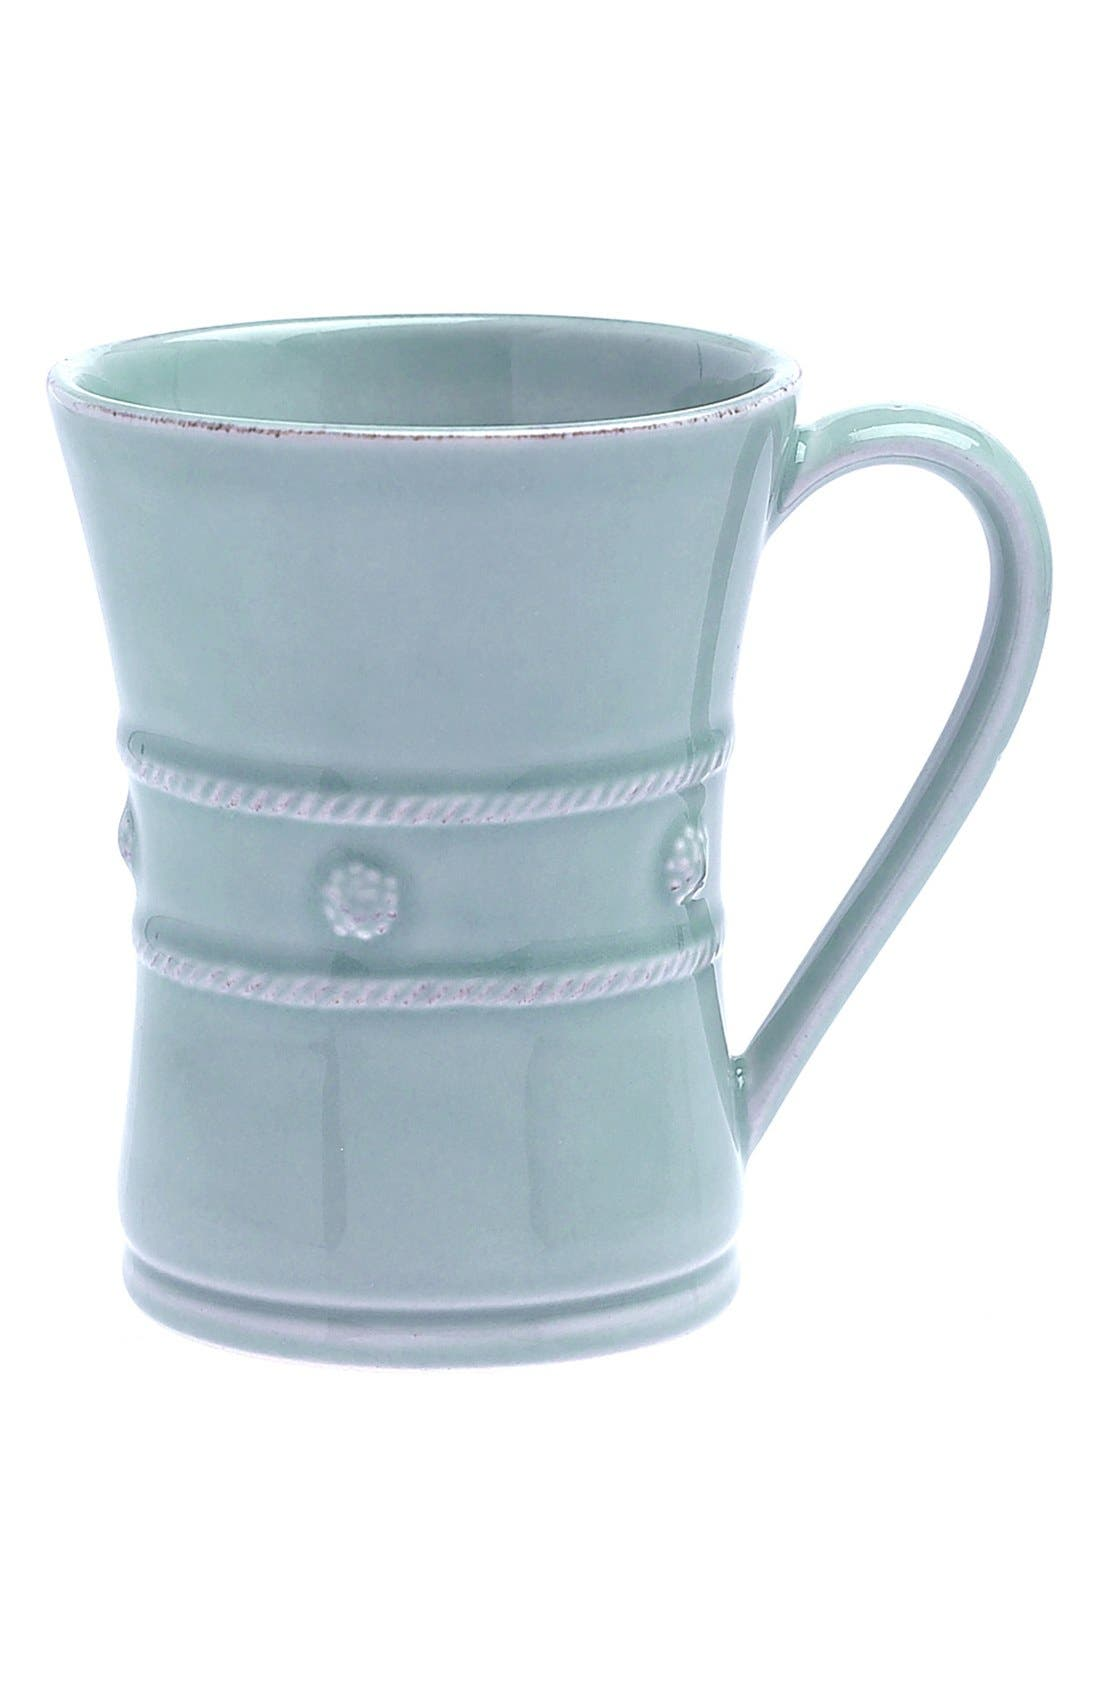 'Berry and Thread' Ceramic Coffee Mug,                             Main thumbnail 1, color,                             440